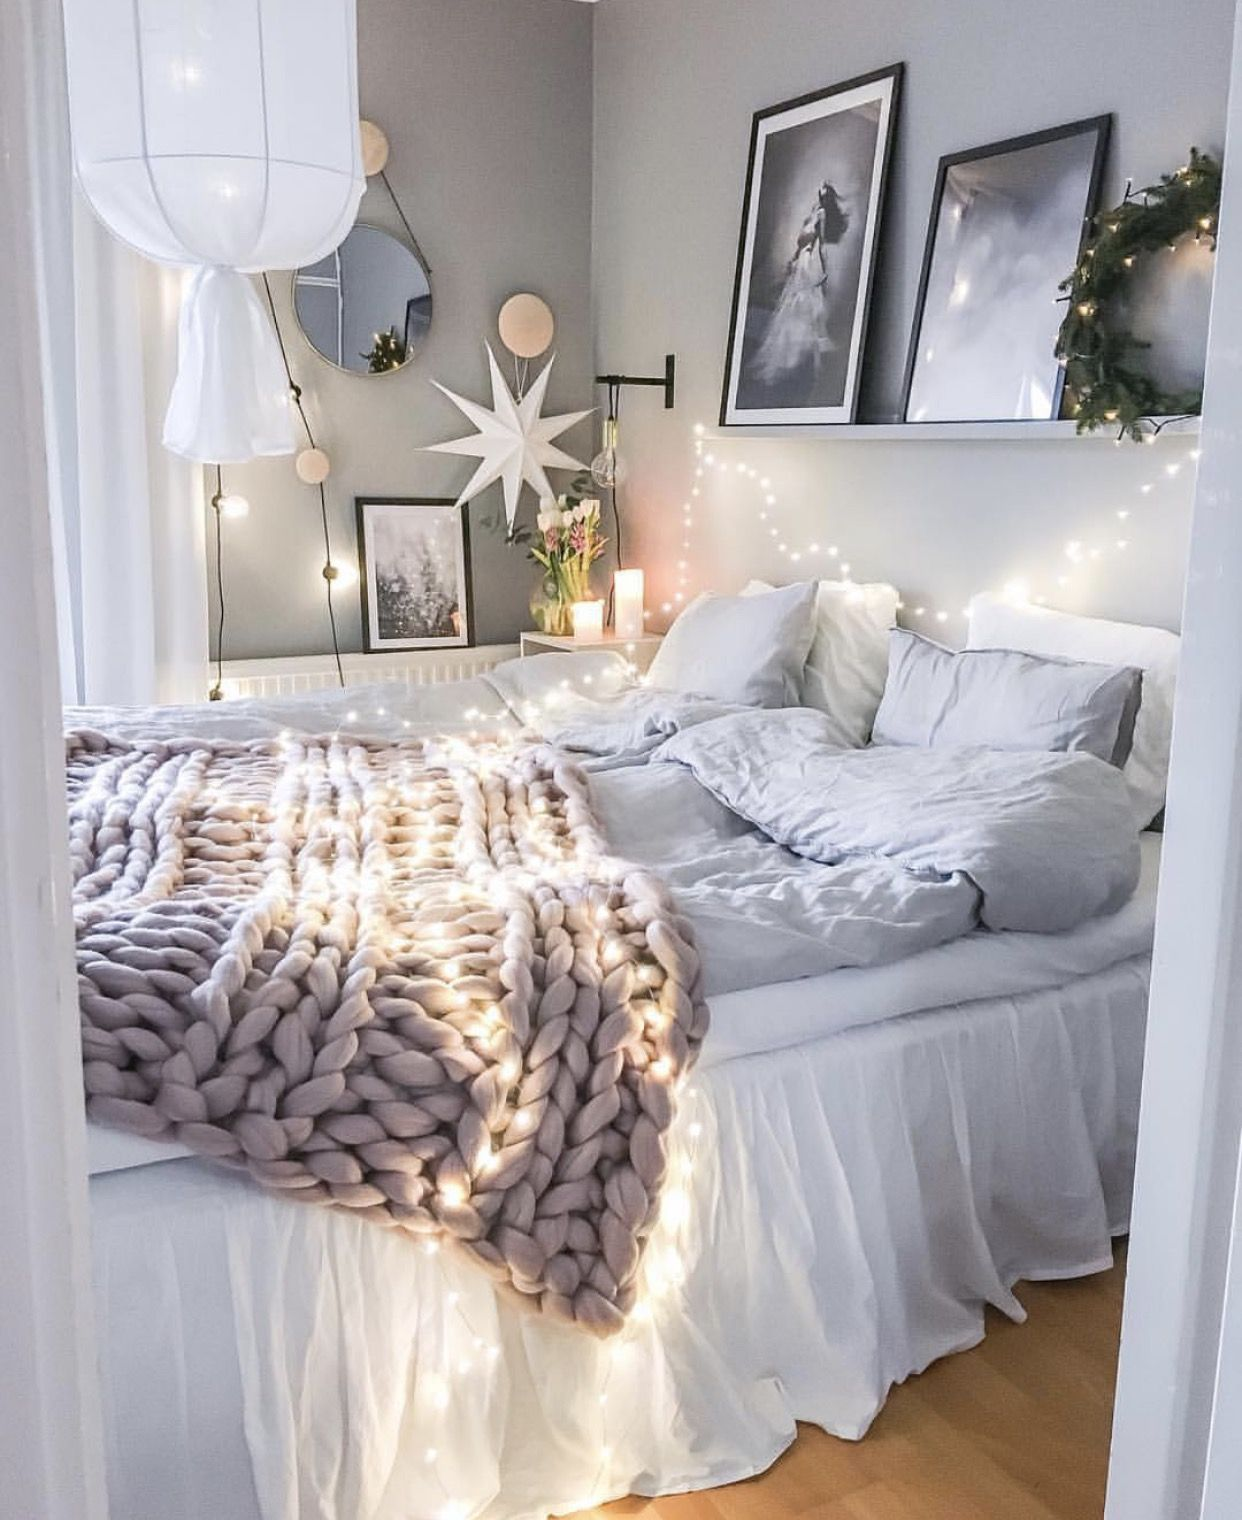 Cozy Bedroom Ideas 20 White Bedroom Ideas That Bring Comfort To Your Sleeping Nest